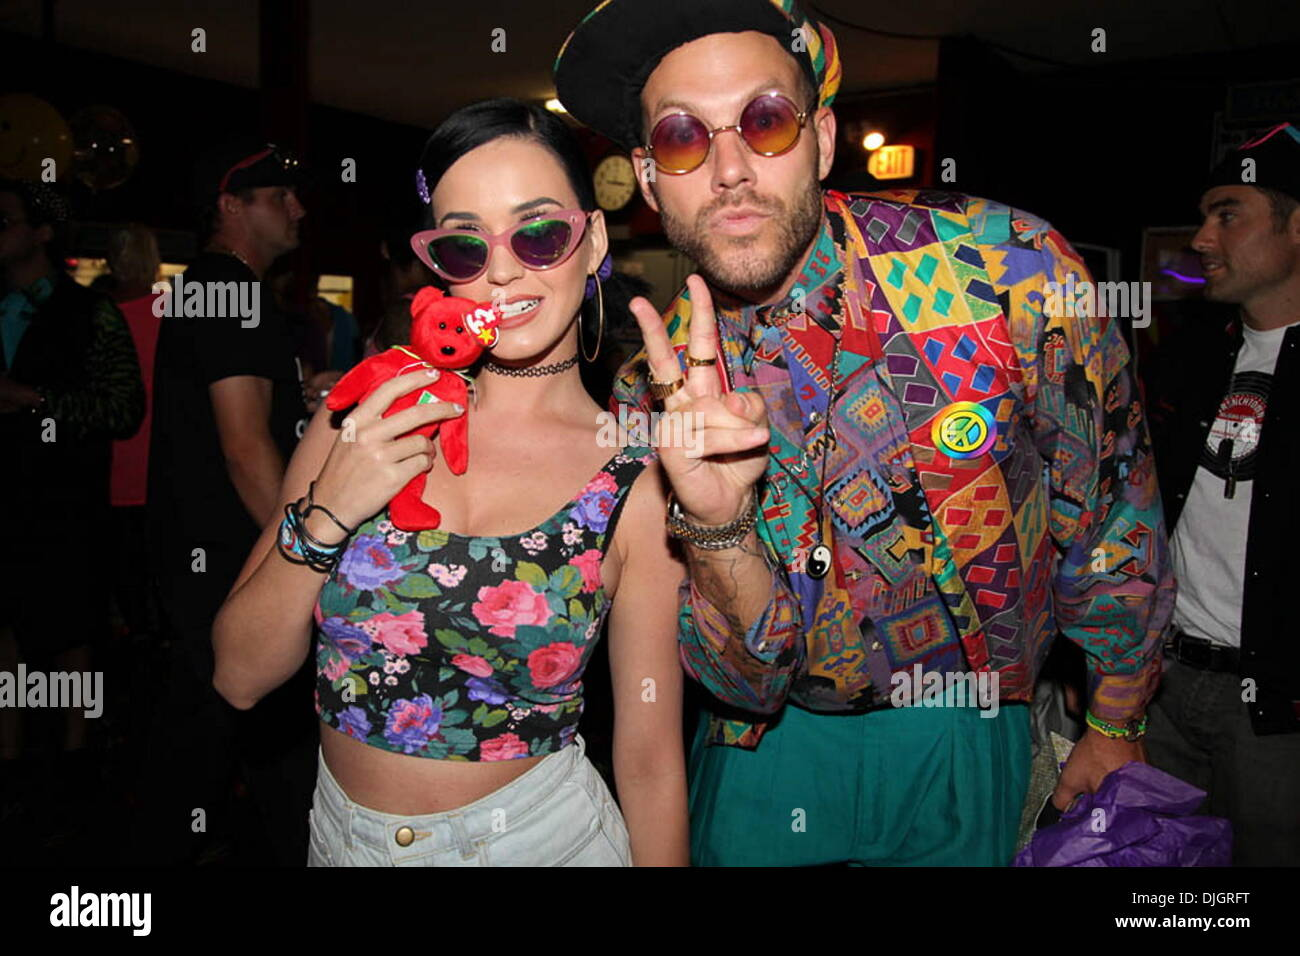 Roller skating los angeles - Katy Perry And Johnny Wujek Attend Johnny Wujek S Rollerskating Birthday Party At Moonlight Rollerway Los Angeles California 14 07 12 Credit